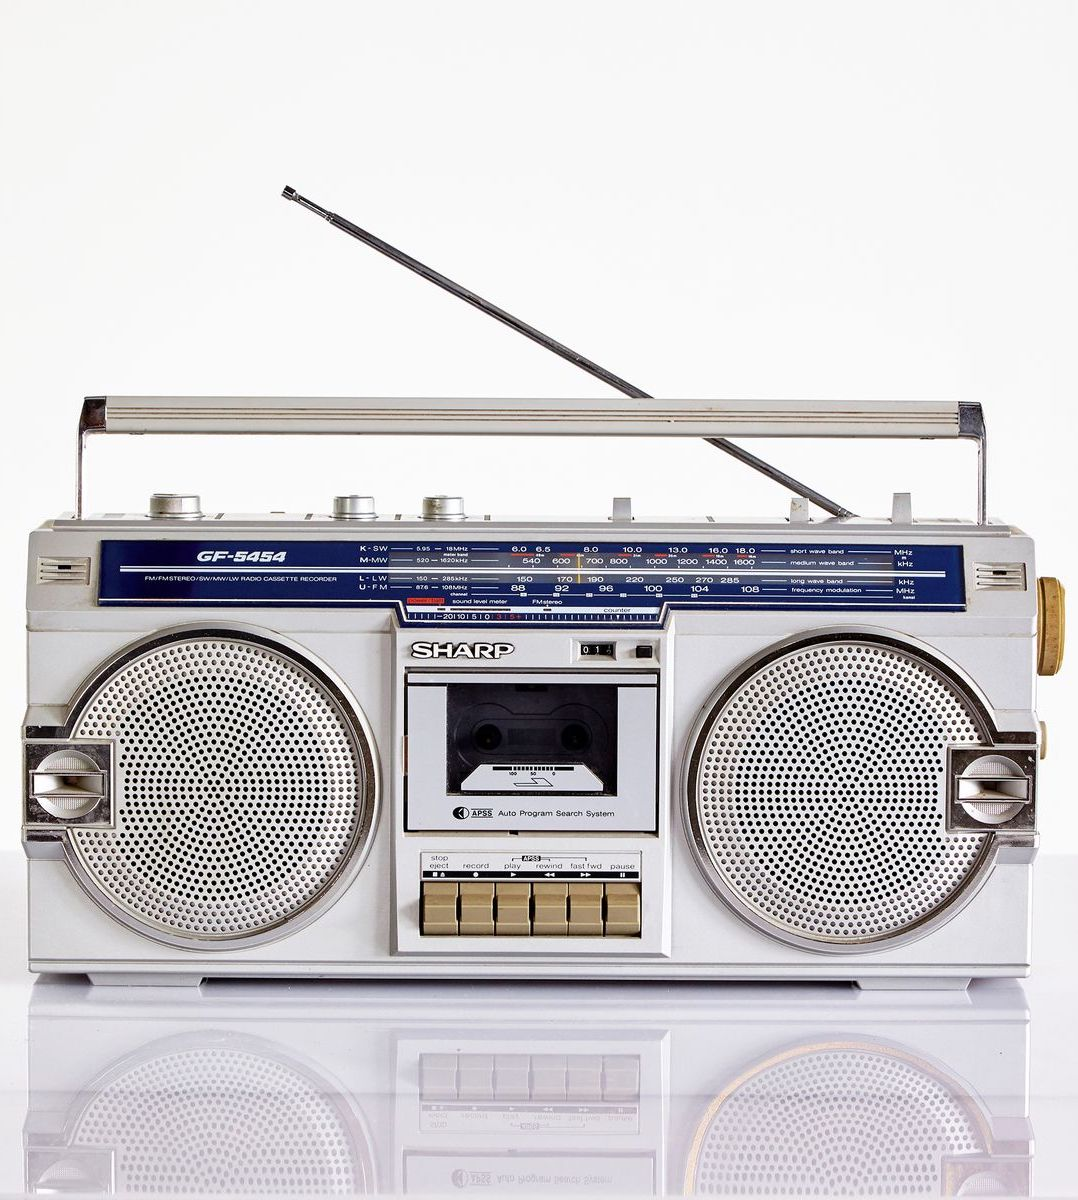 A Sharp radio cassette player from the 1980s